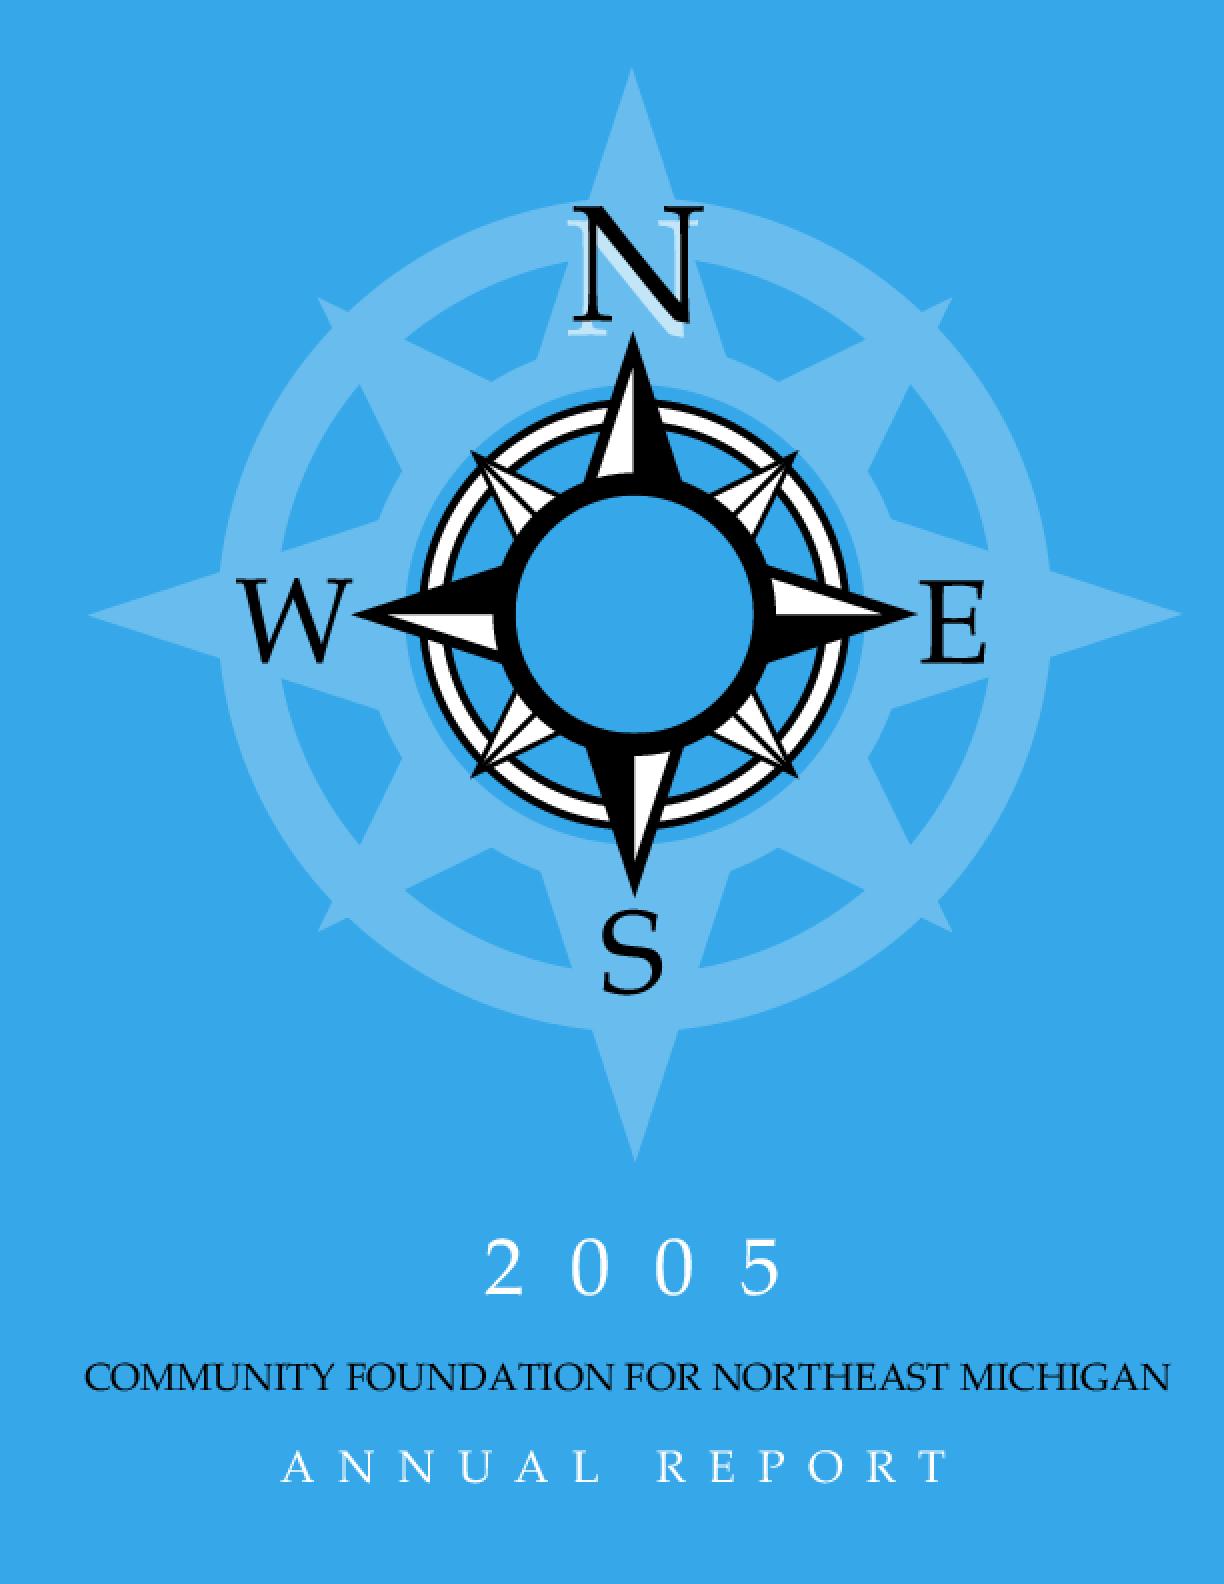 Community Foundation for Northeast Michigan - 2005 Annual Report